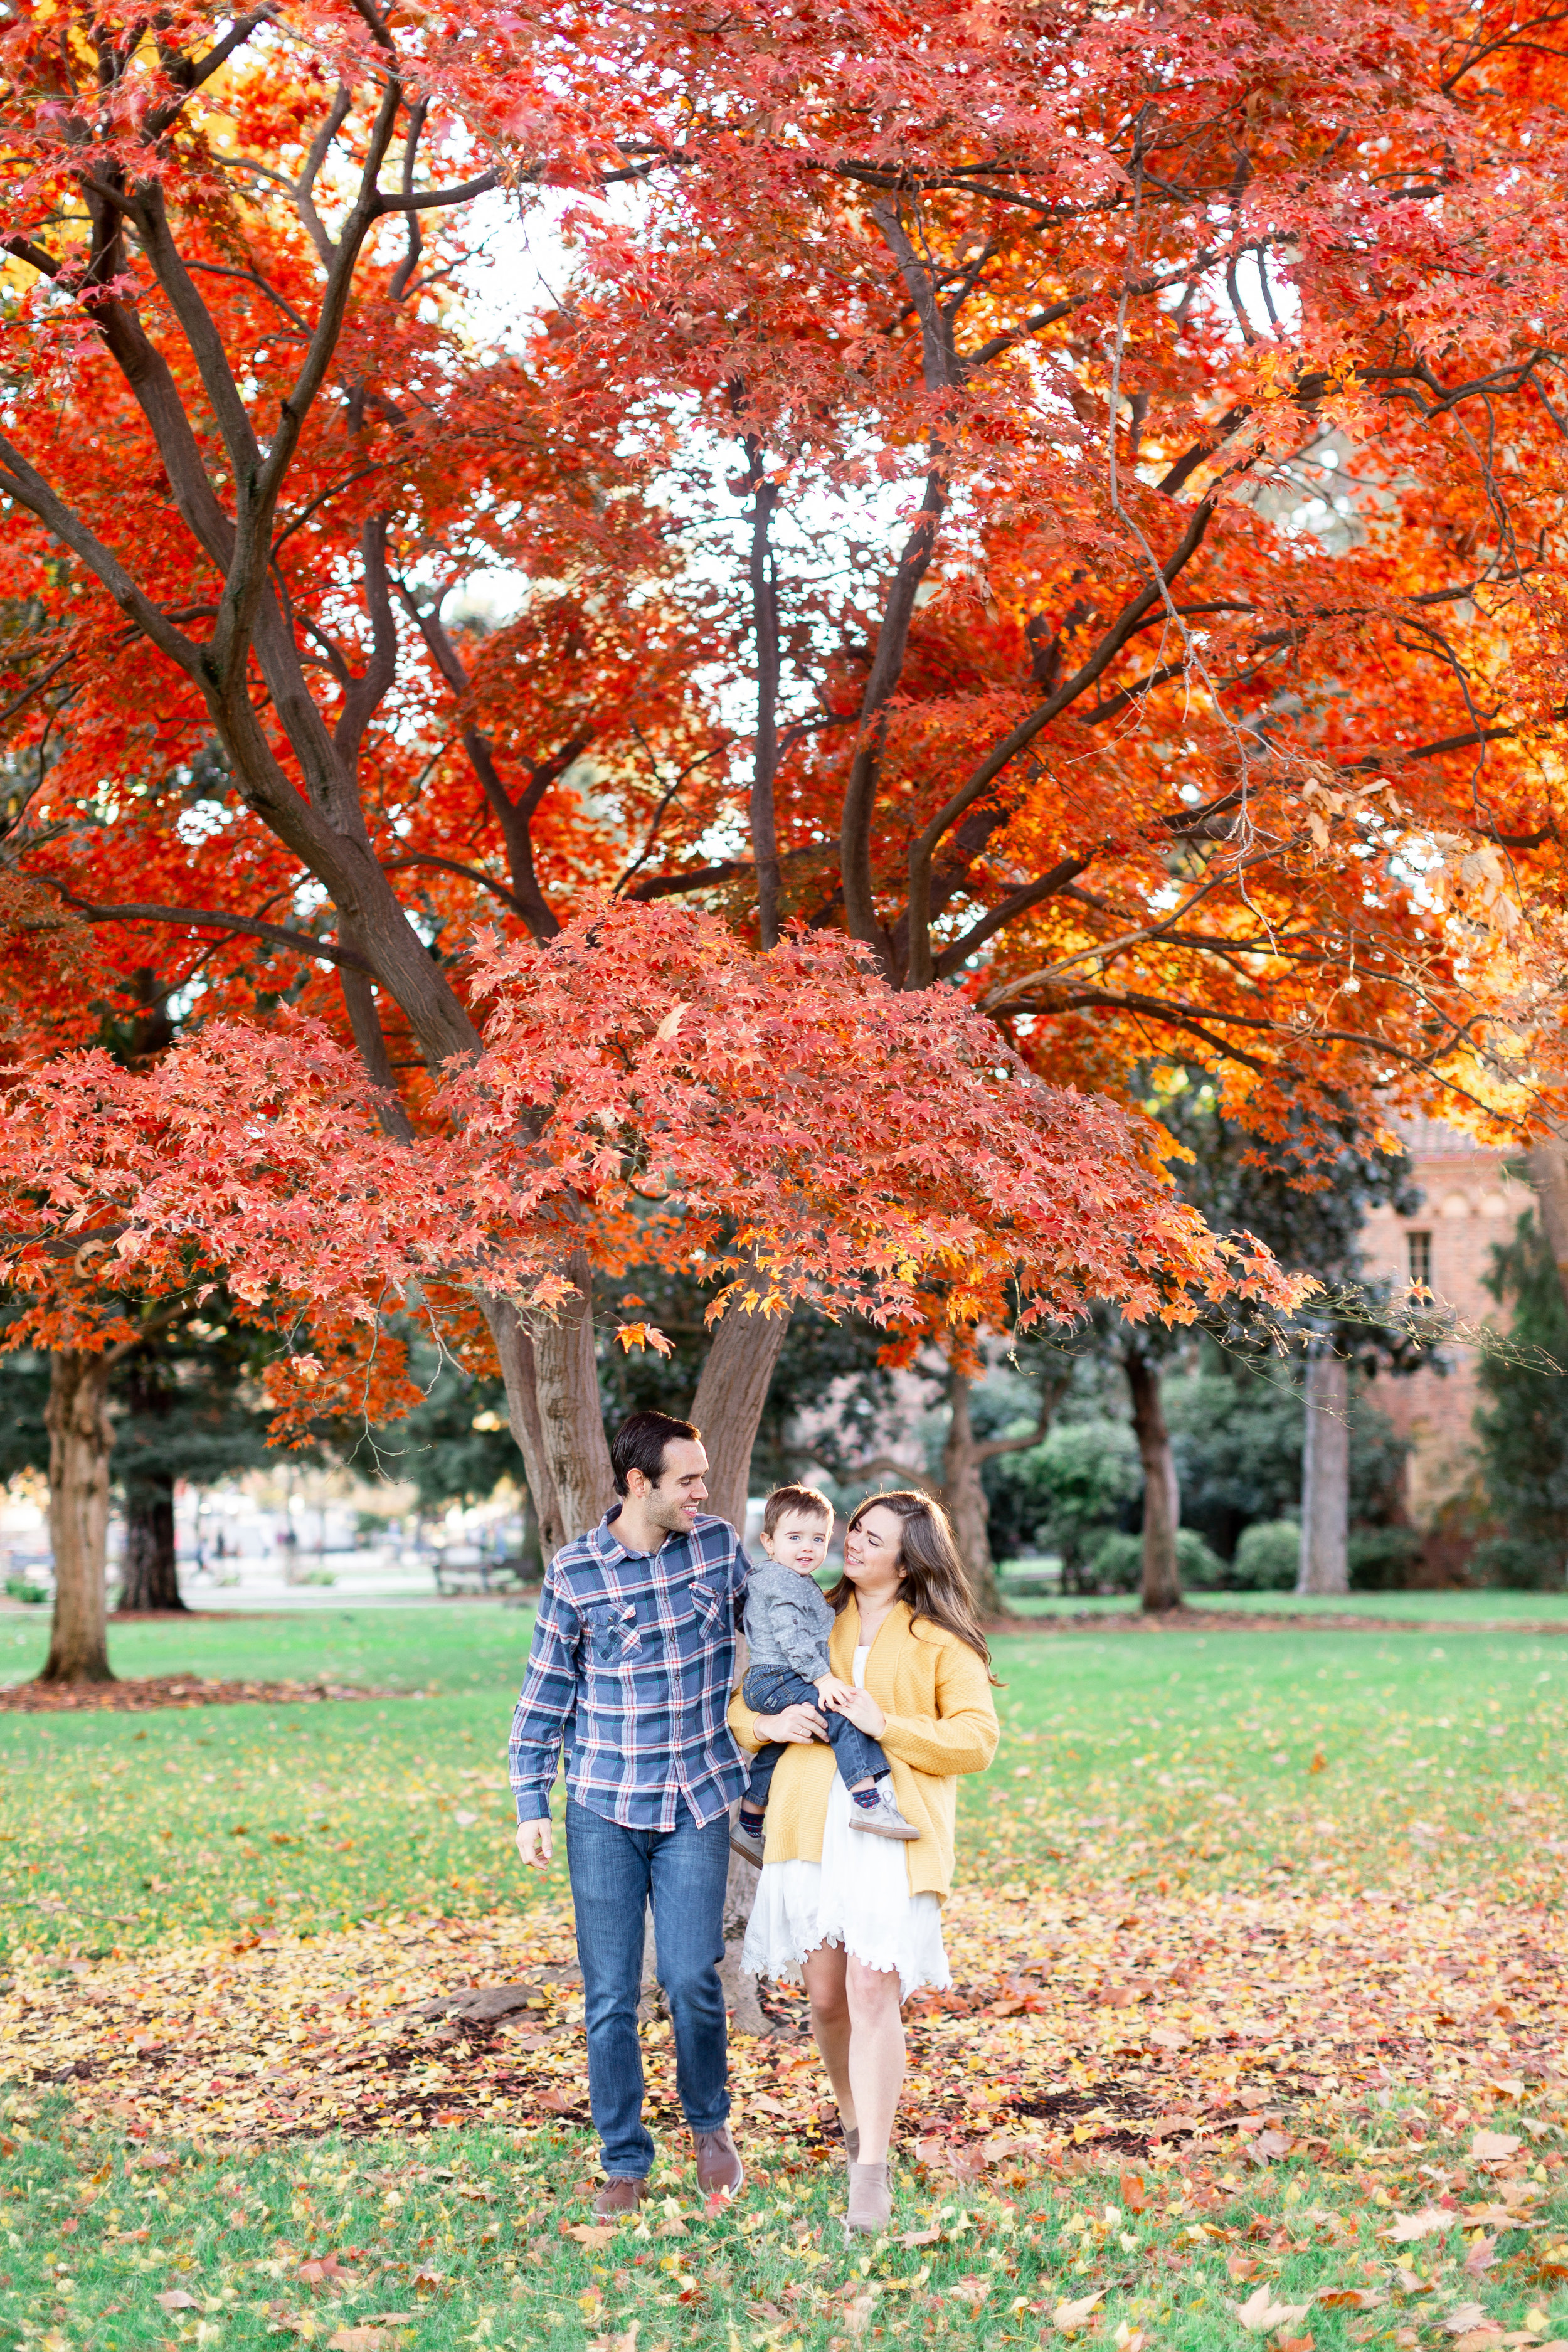 Chico-State-Fall-Family-Photos (10 of 58).jpg